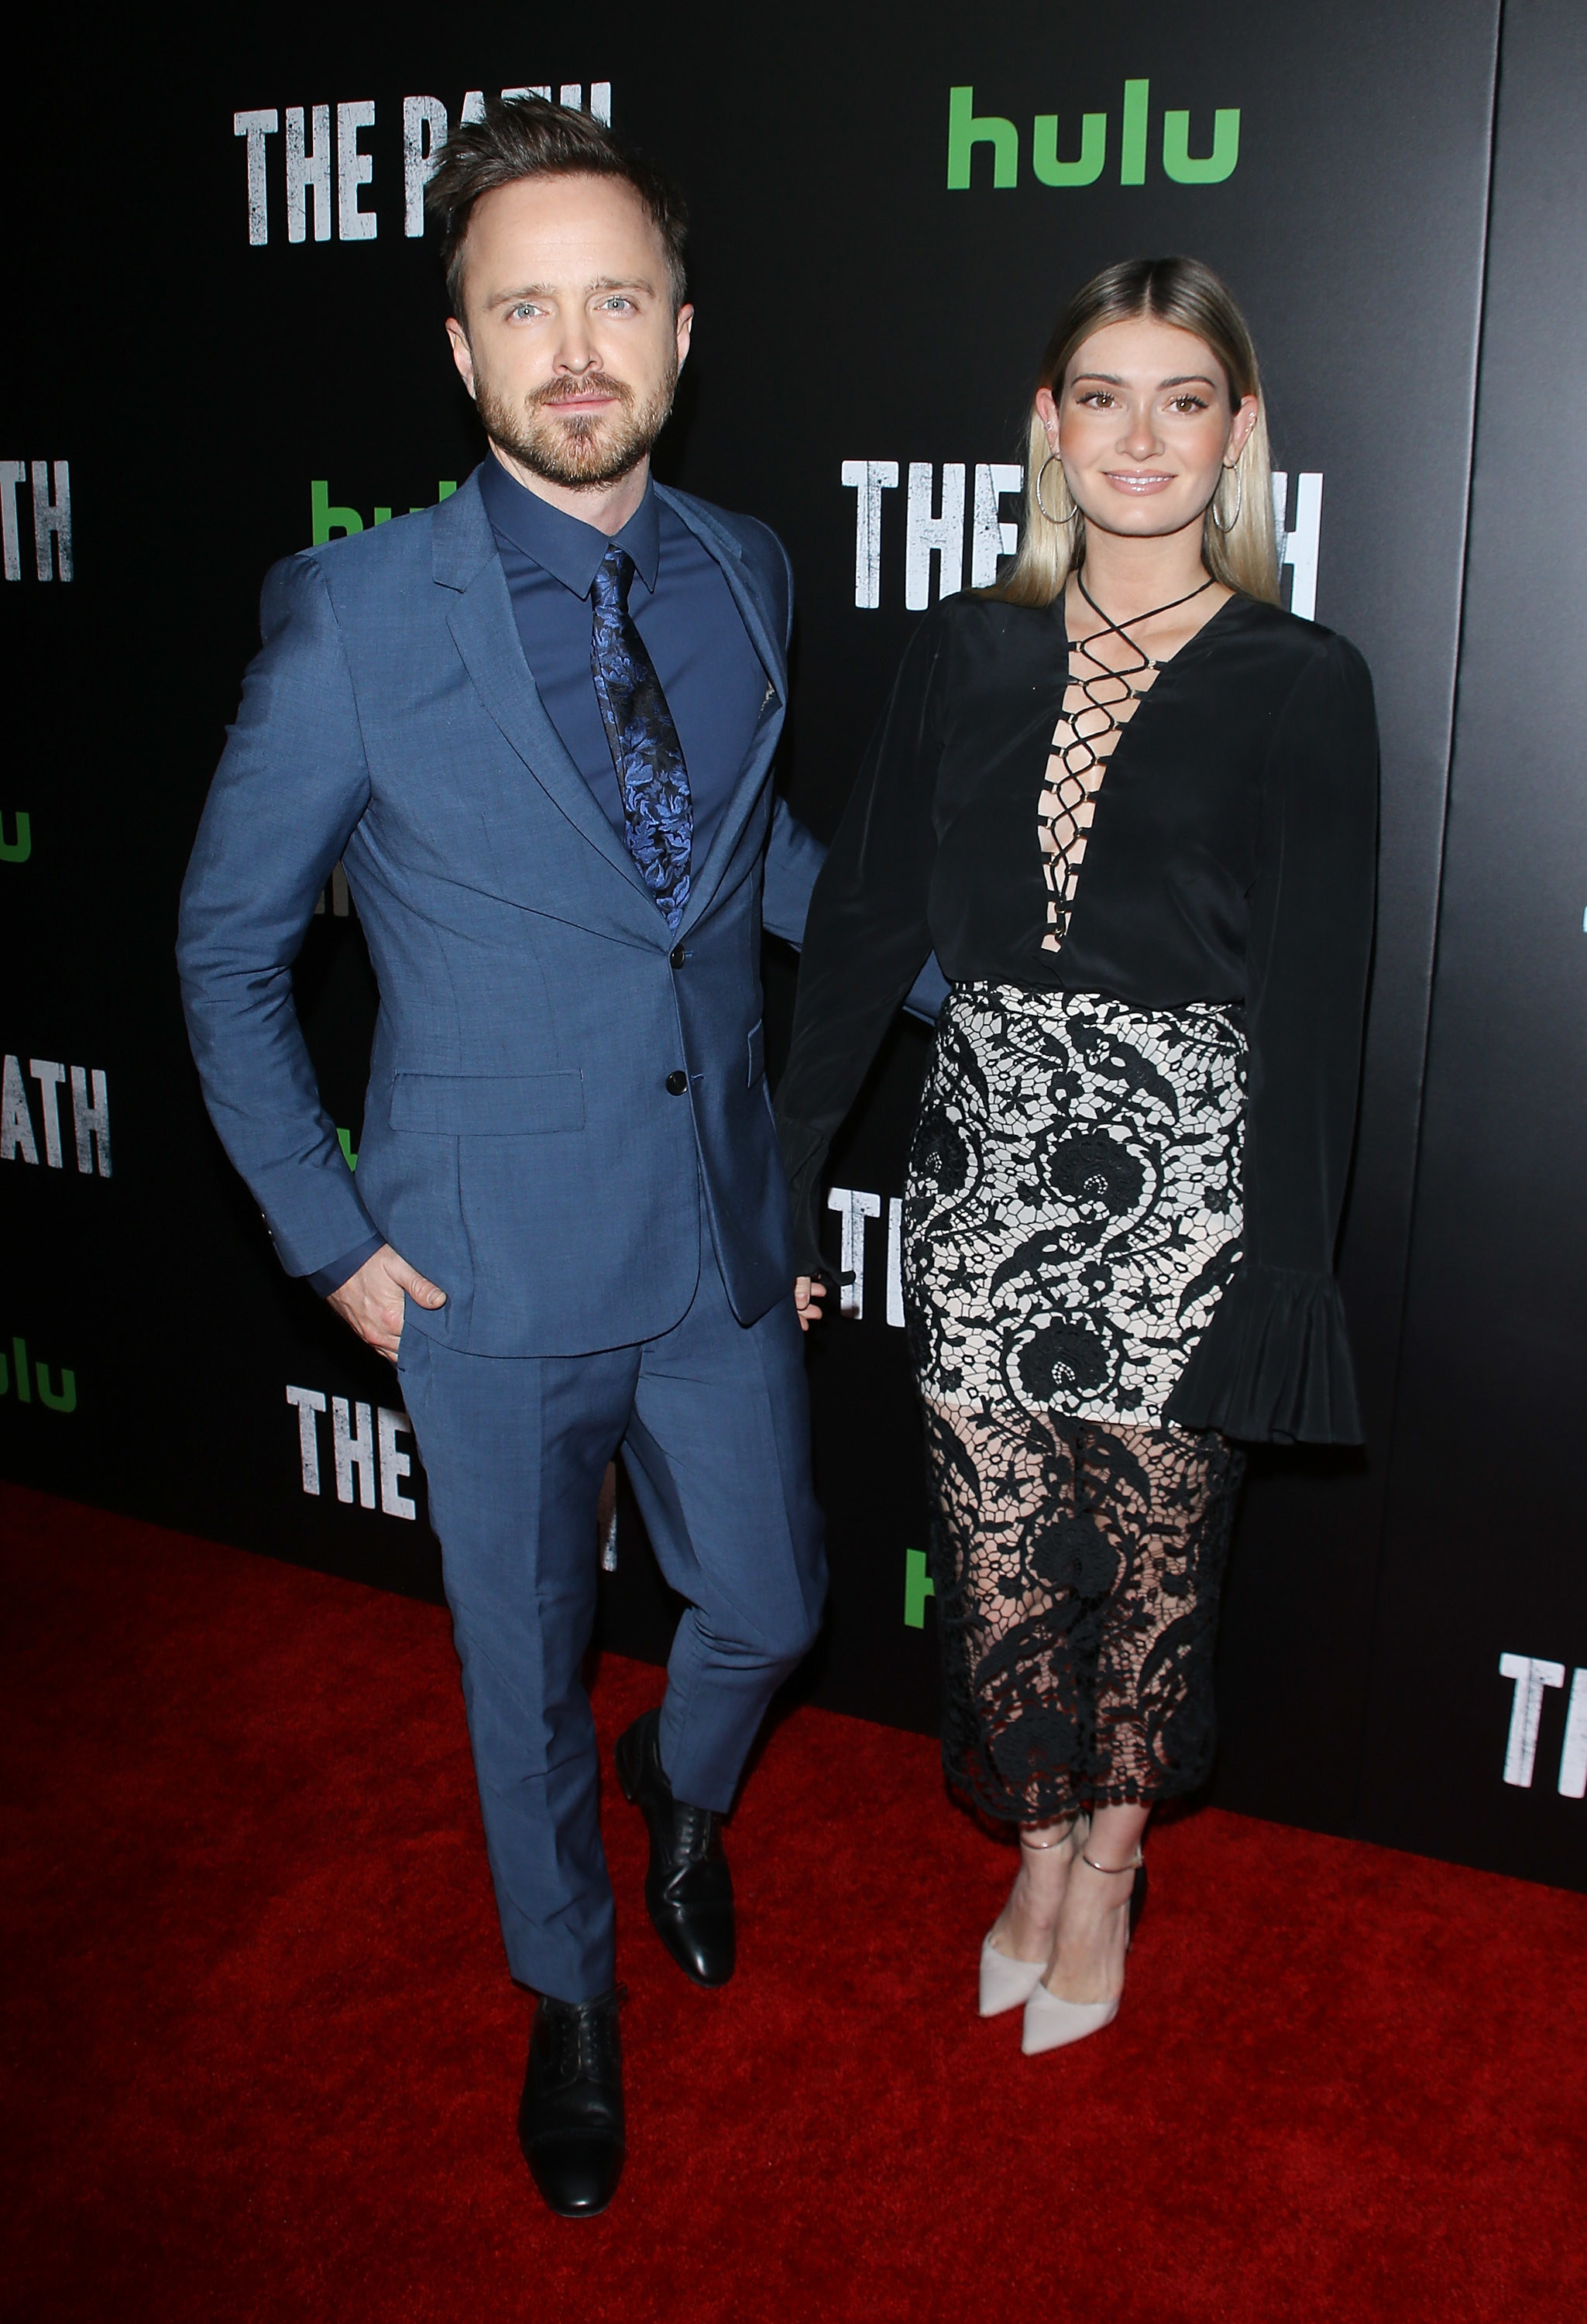 at the premiere of the path, aaron's show